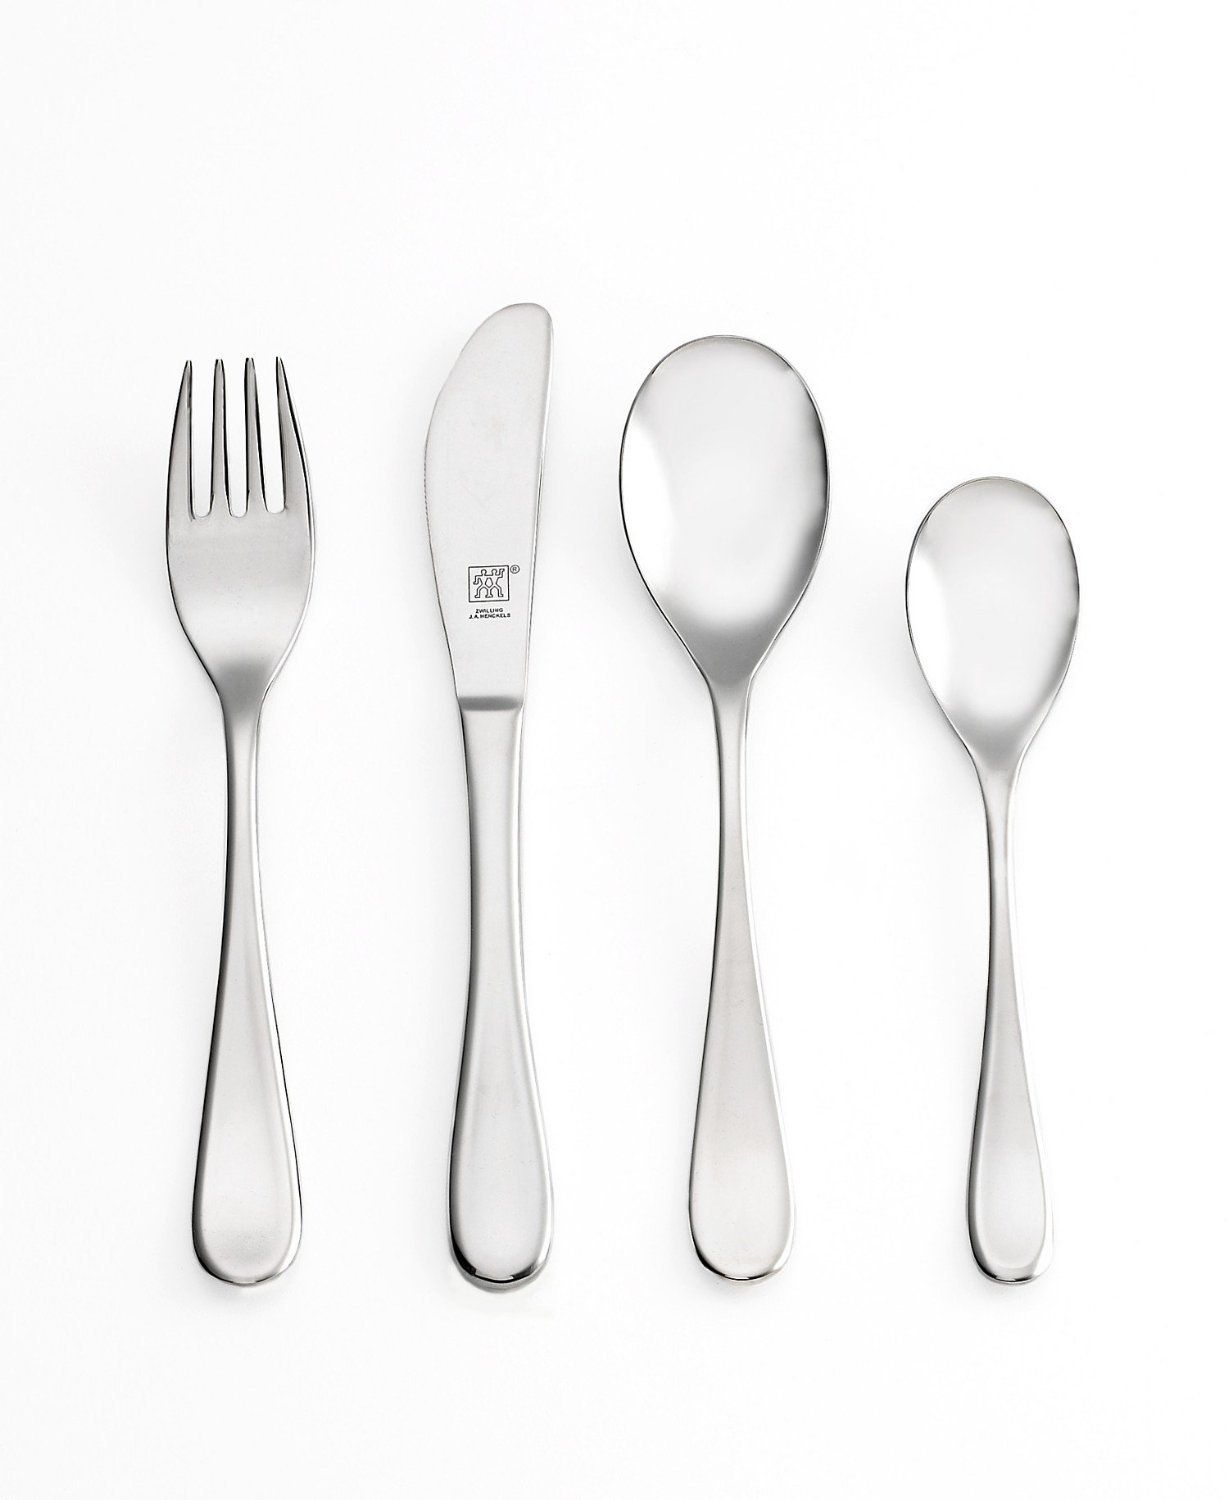 How To Setup An Ultra Minimalist Kitchen Cutlery For Each Person You Could Get By With A Set Of Chopsticks And A Spoo Kids Flatware Flatware Set Flatware